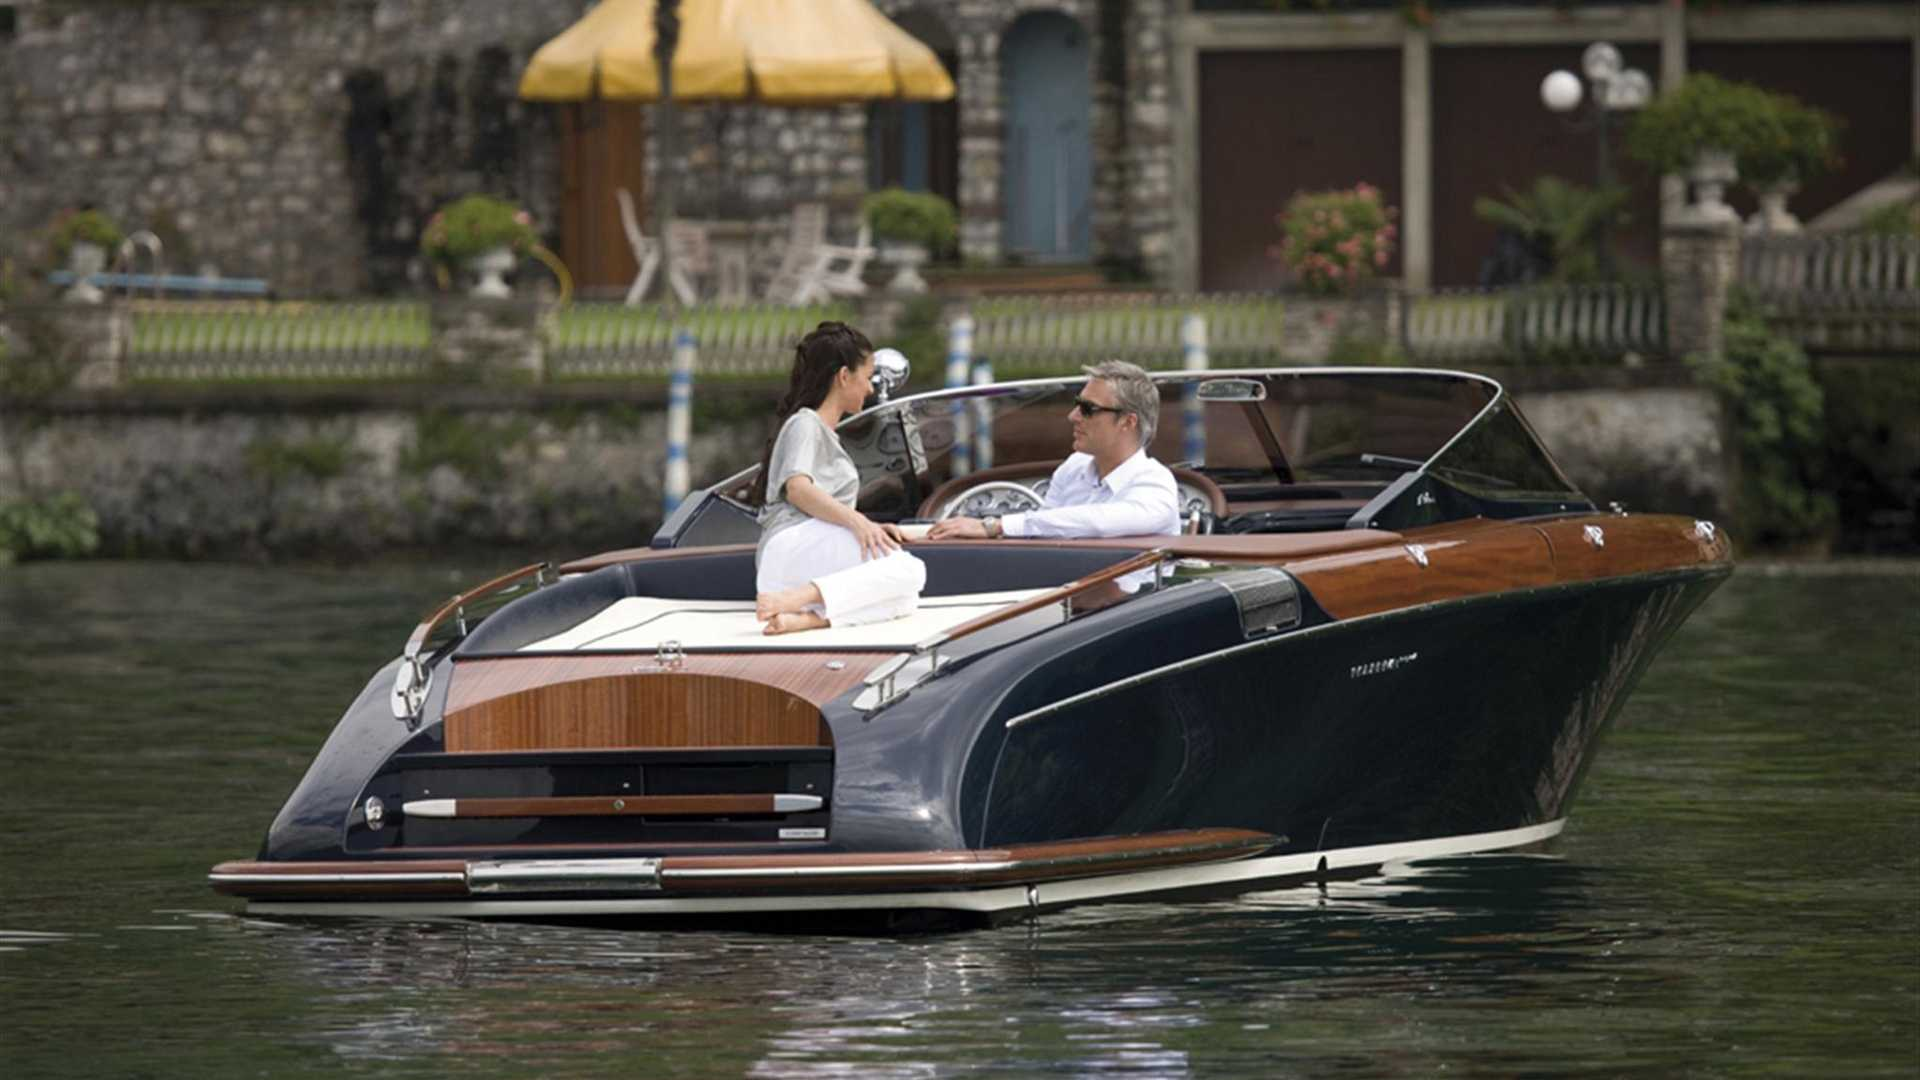 Riva Aquariva Super